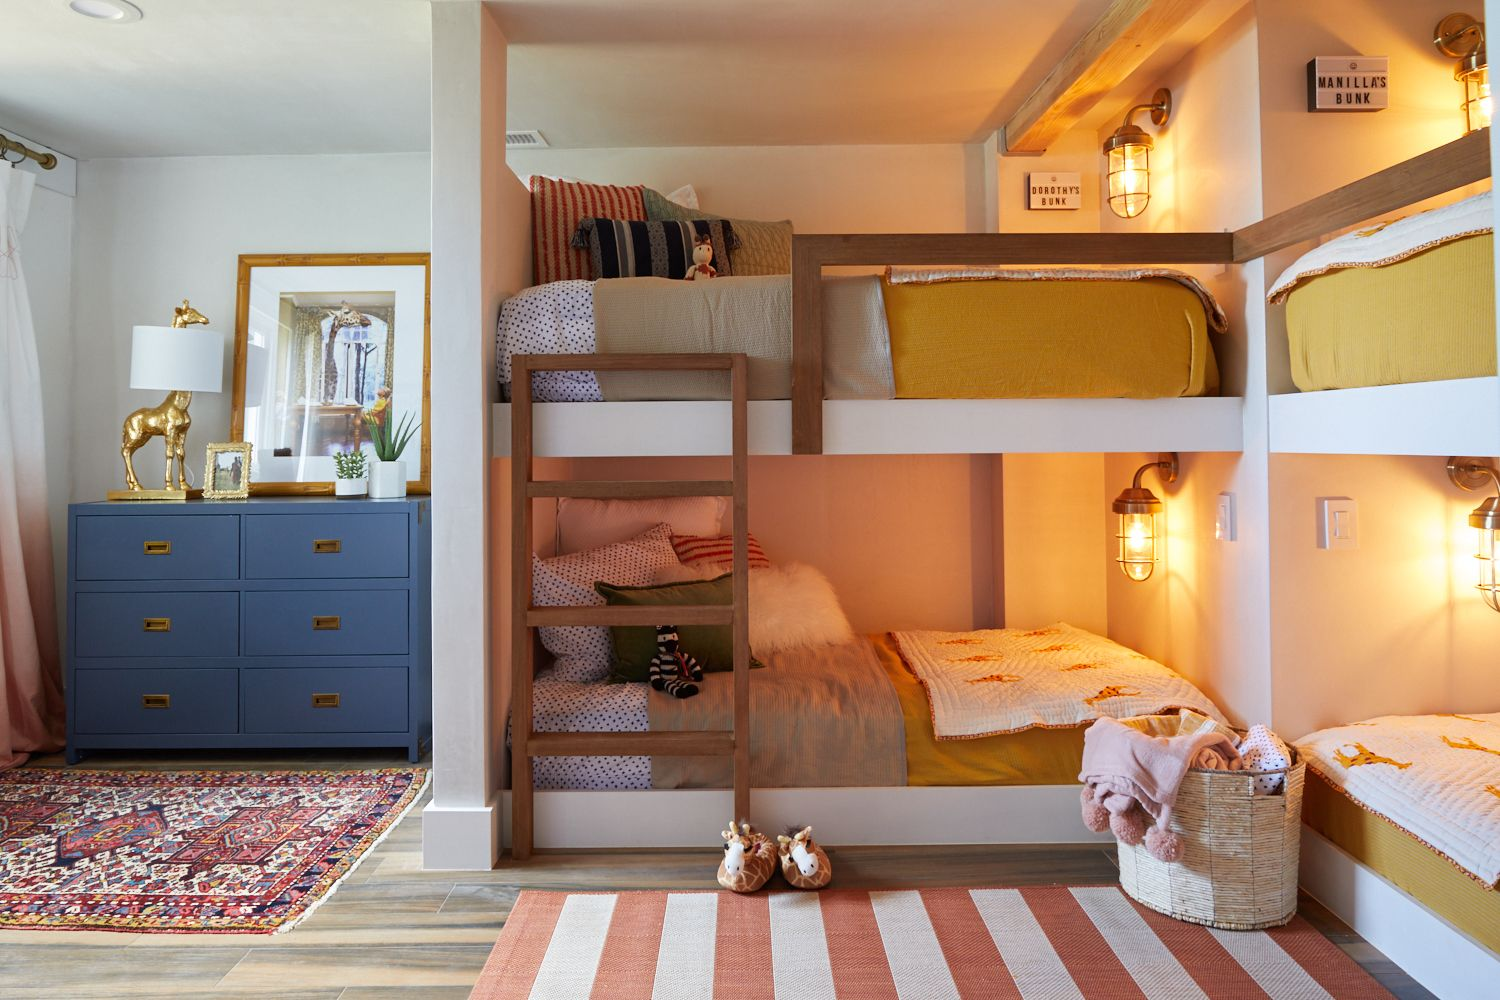 How To Decorate A Child's Bedroom